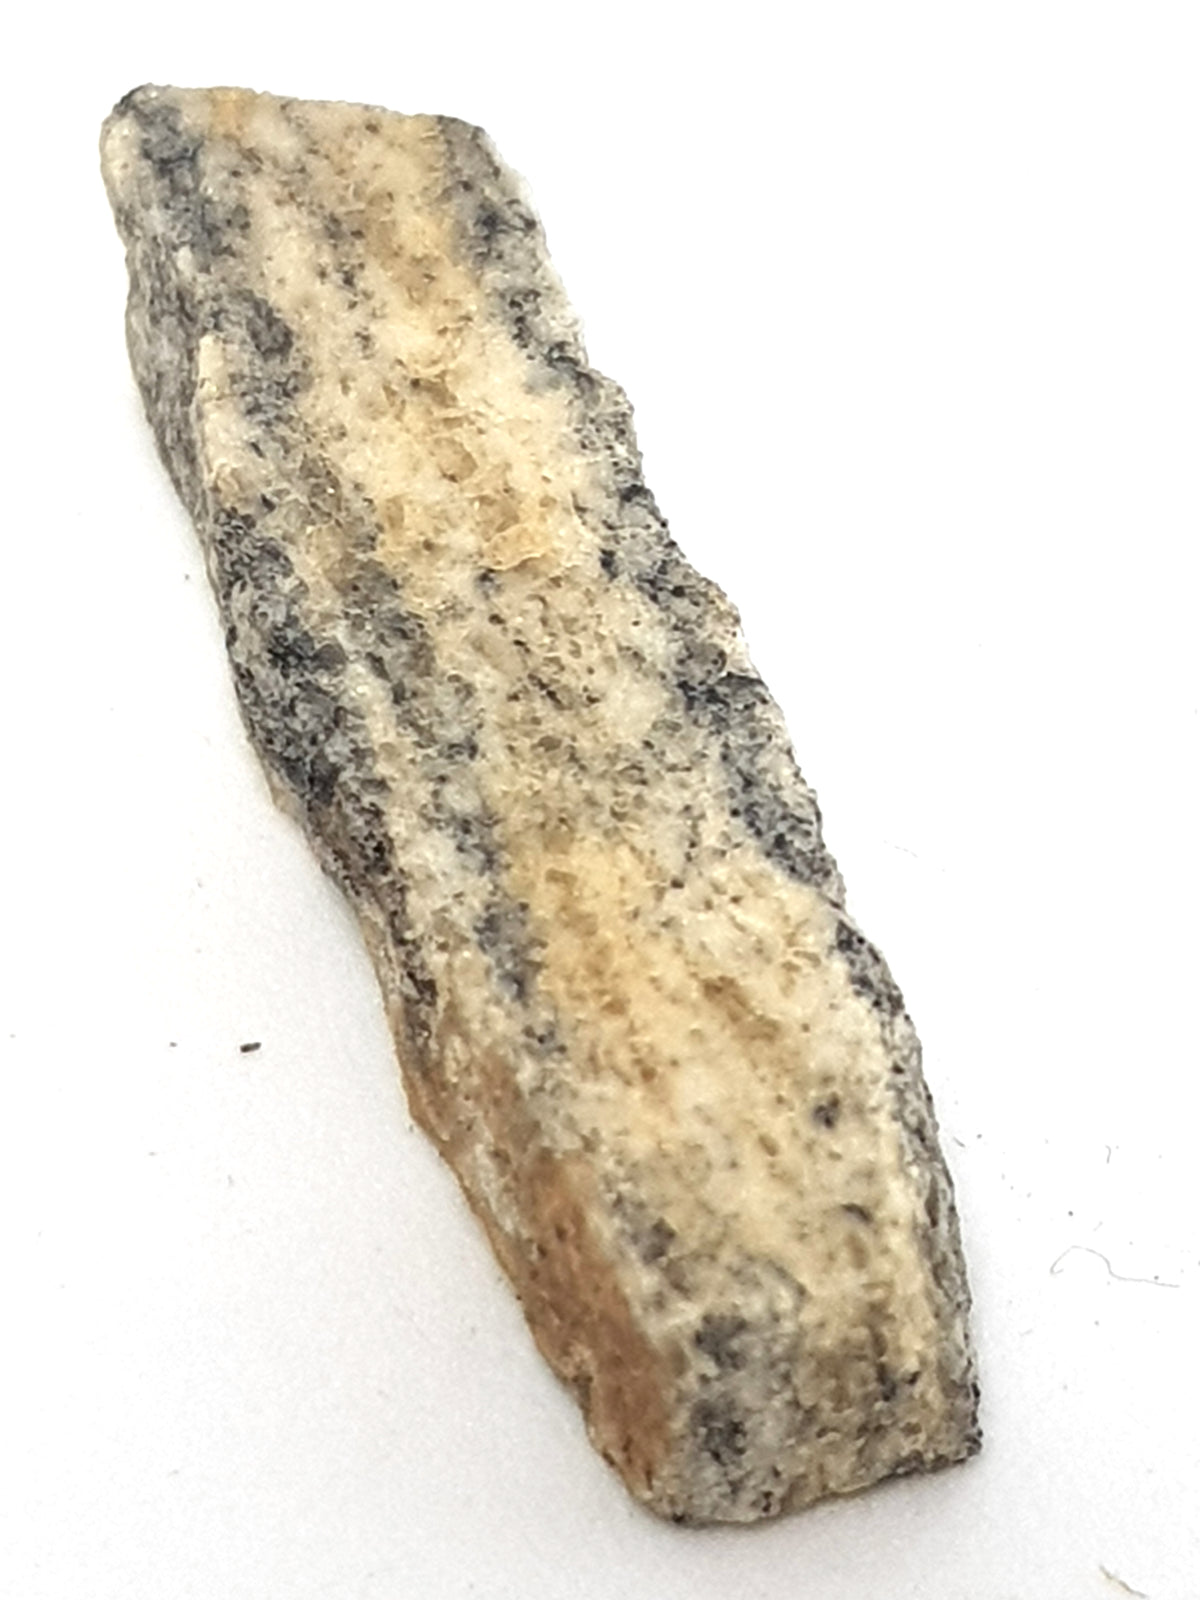 A thin slice of Acasta Gneiss. It is leucocratic with thin black bands